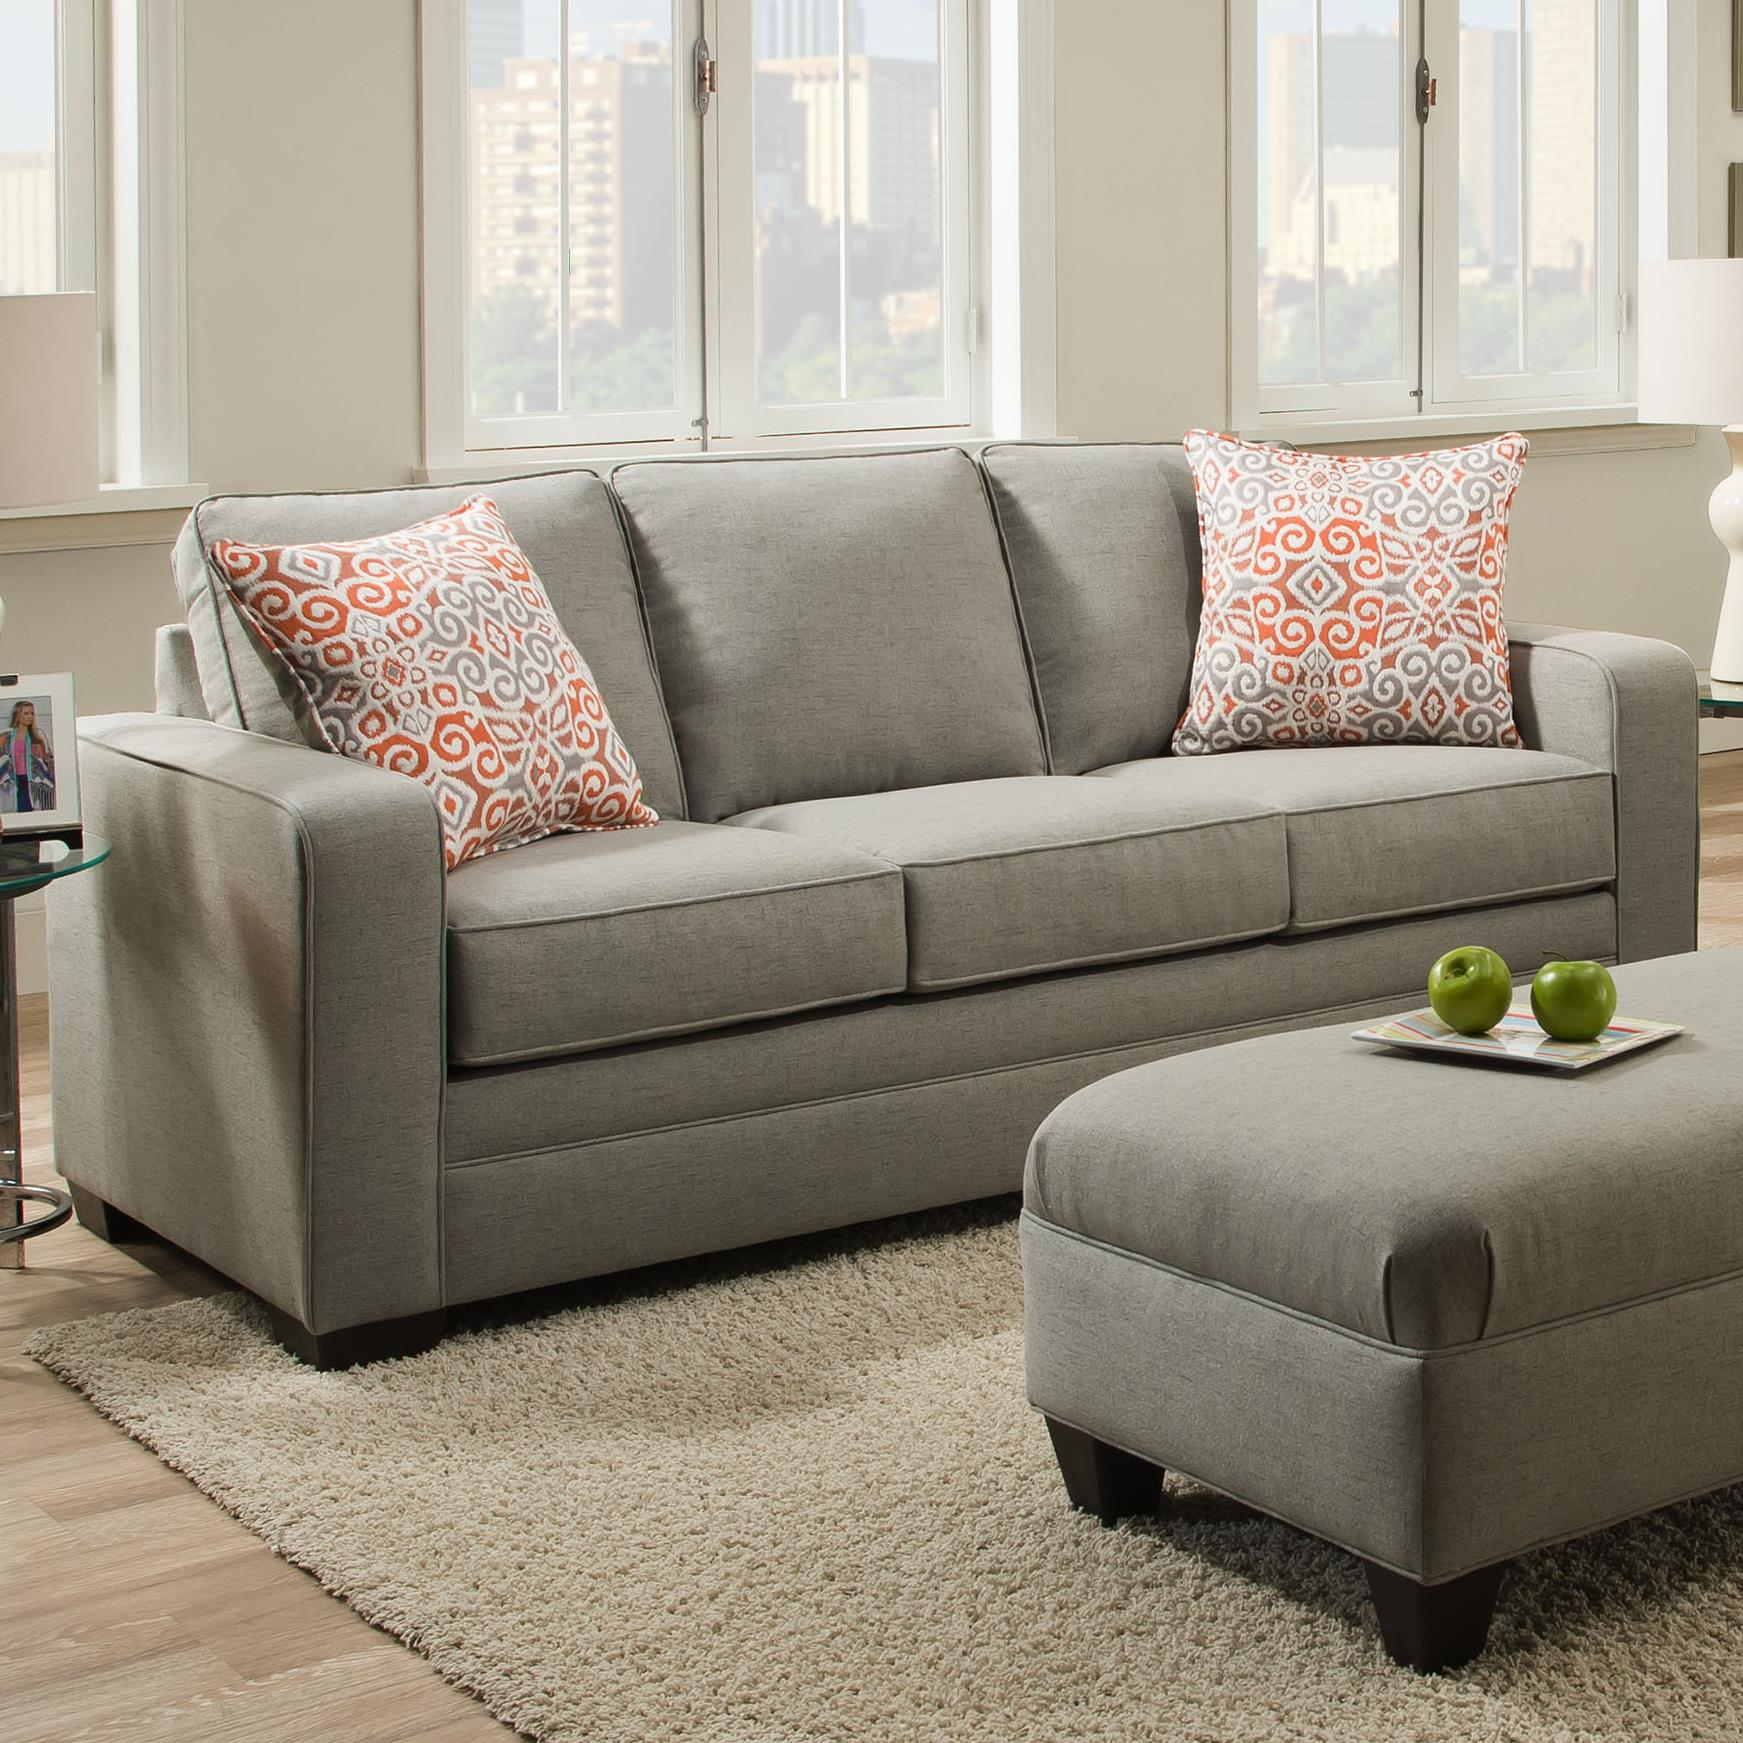 Simmons Upholstery 9064 United Transitional Queen Sleeper Sofa